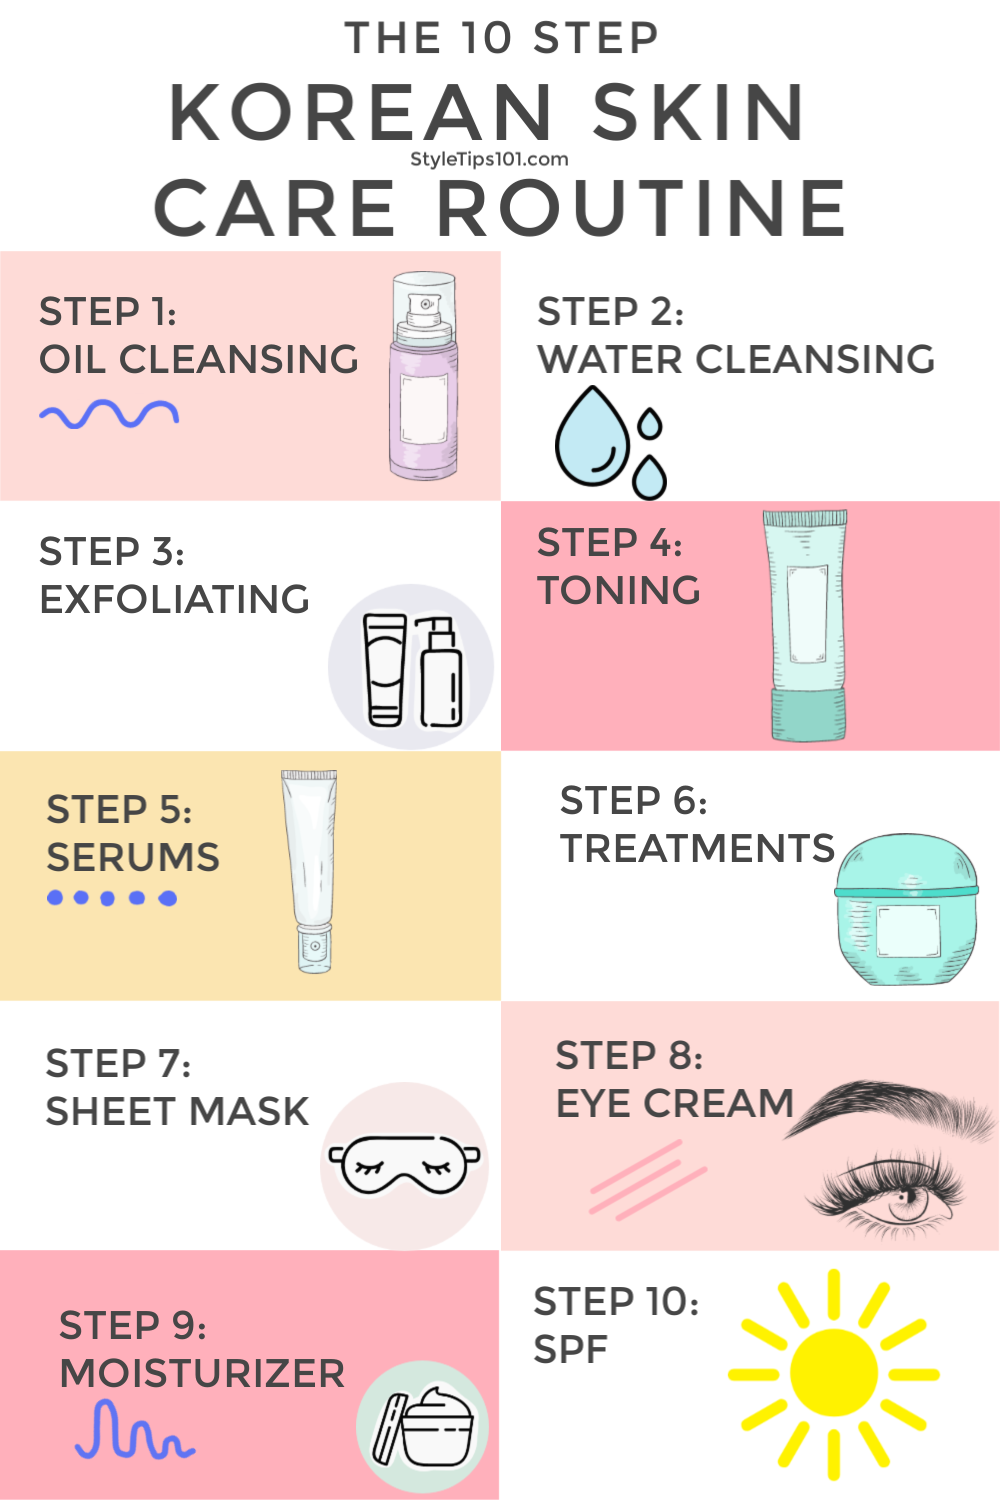 Korean Skin Care Routine Skin Care Routine Steps Skin Care Korean Skincare Routine